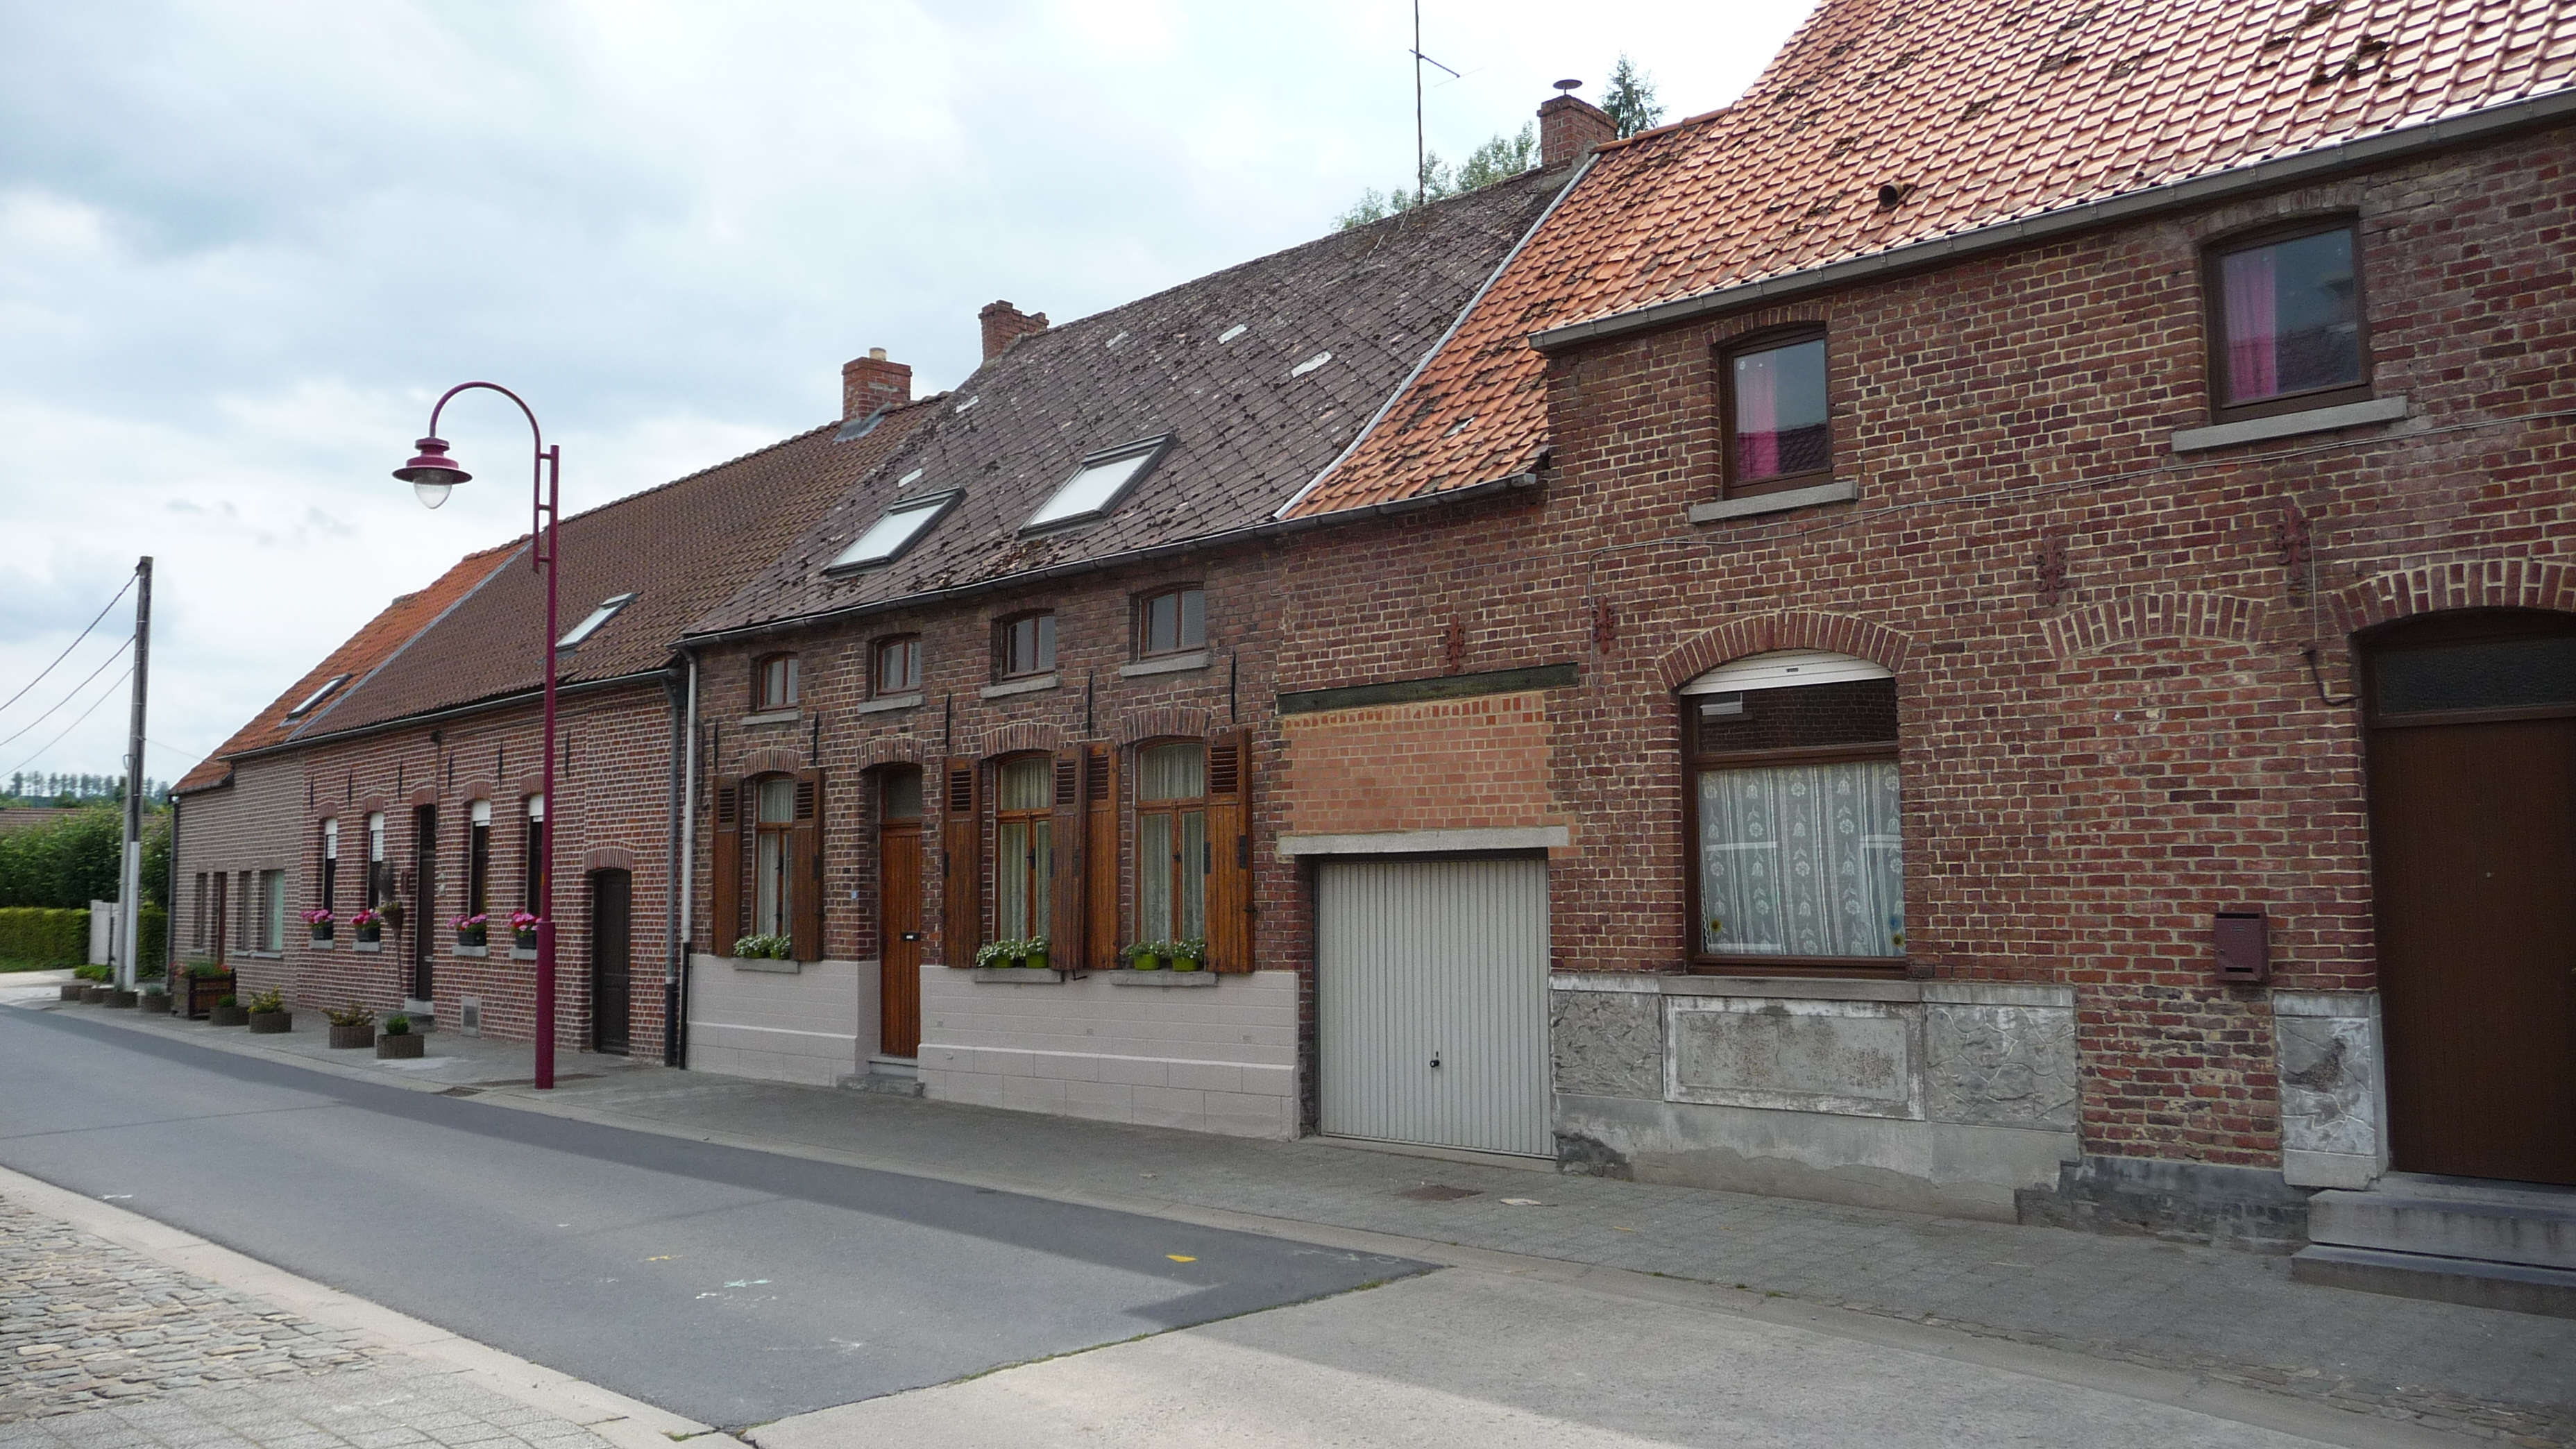 Cottages in Frasnes-les-Anvaing